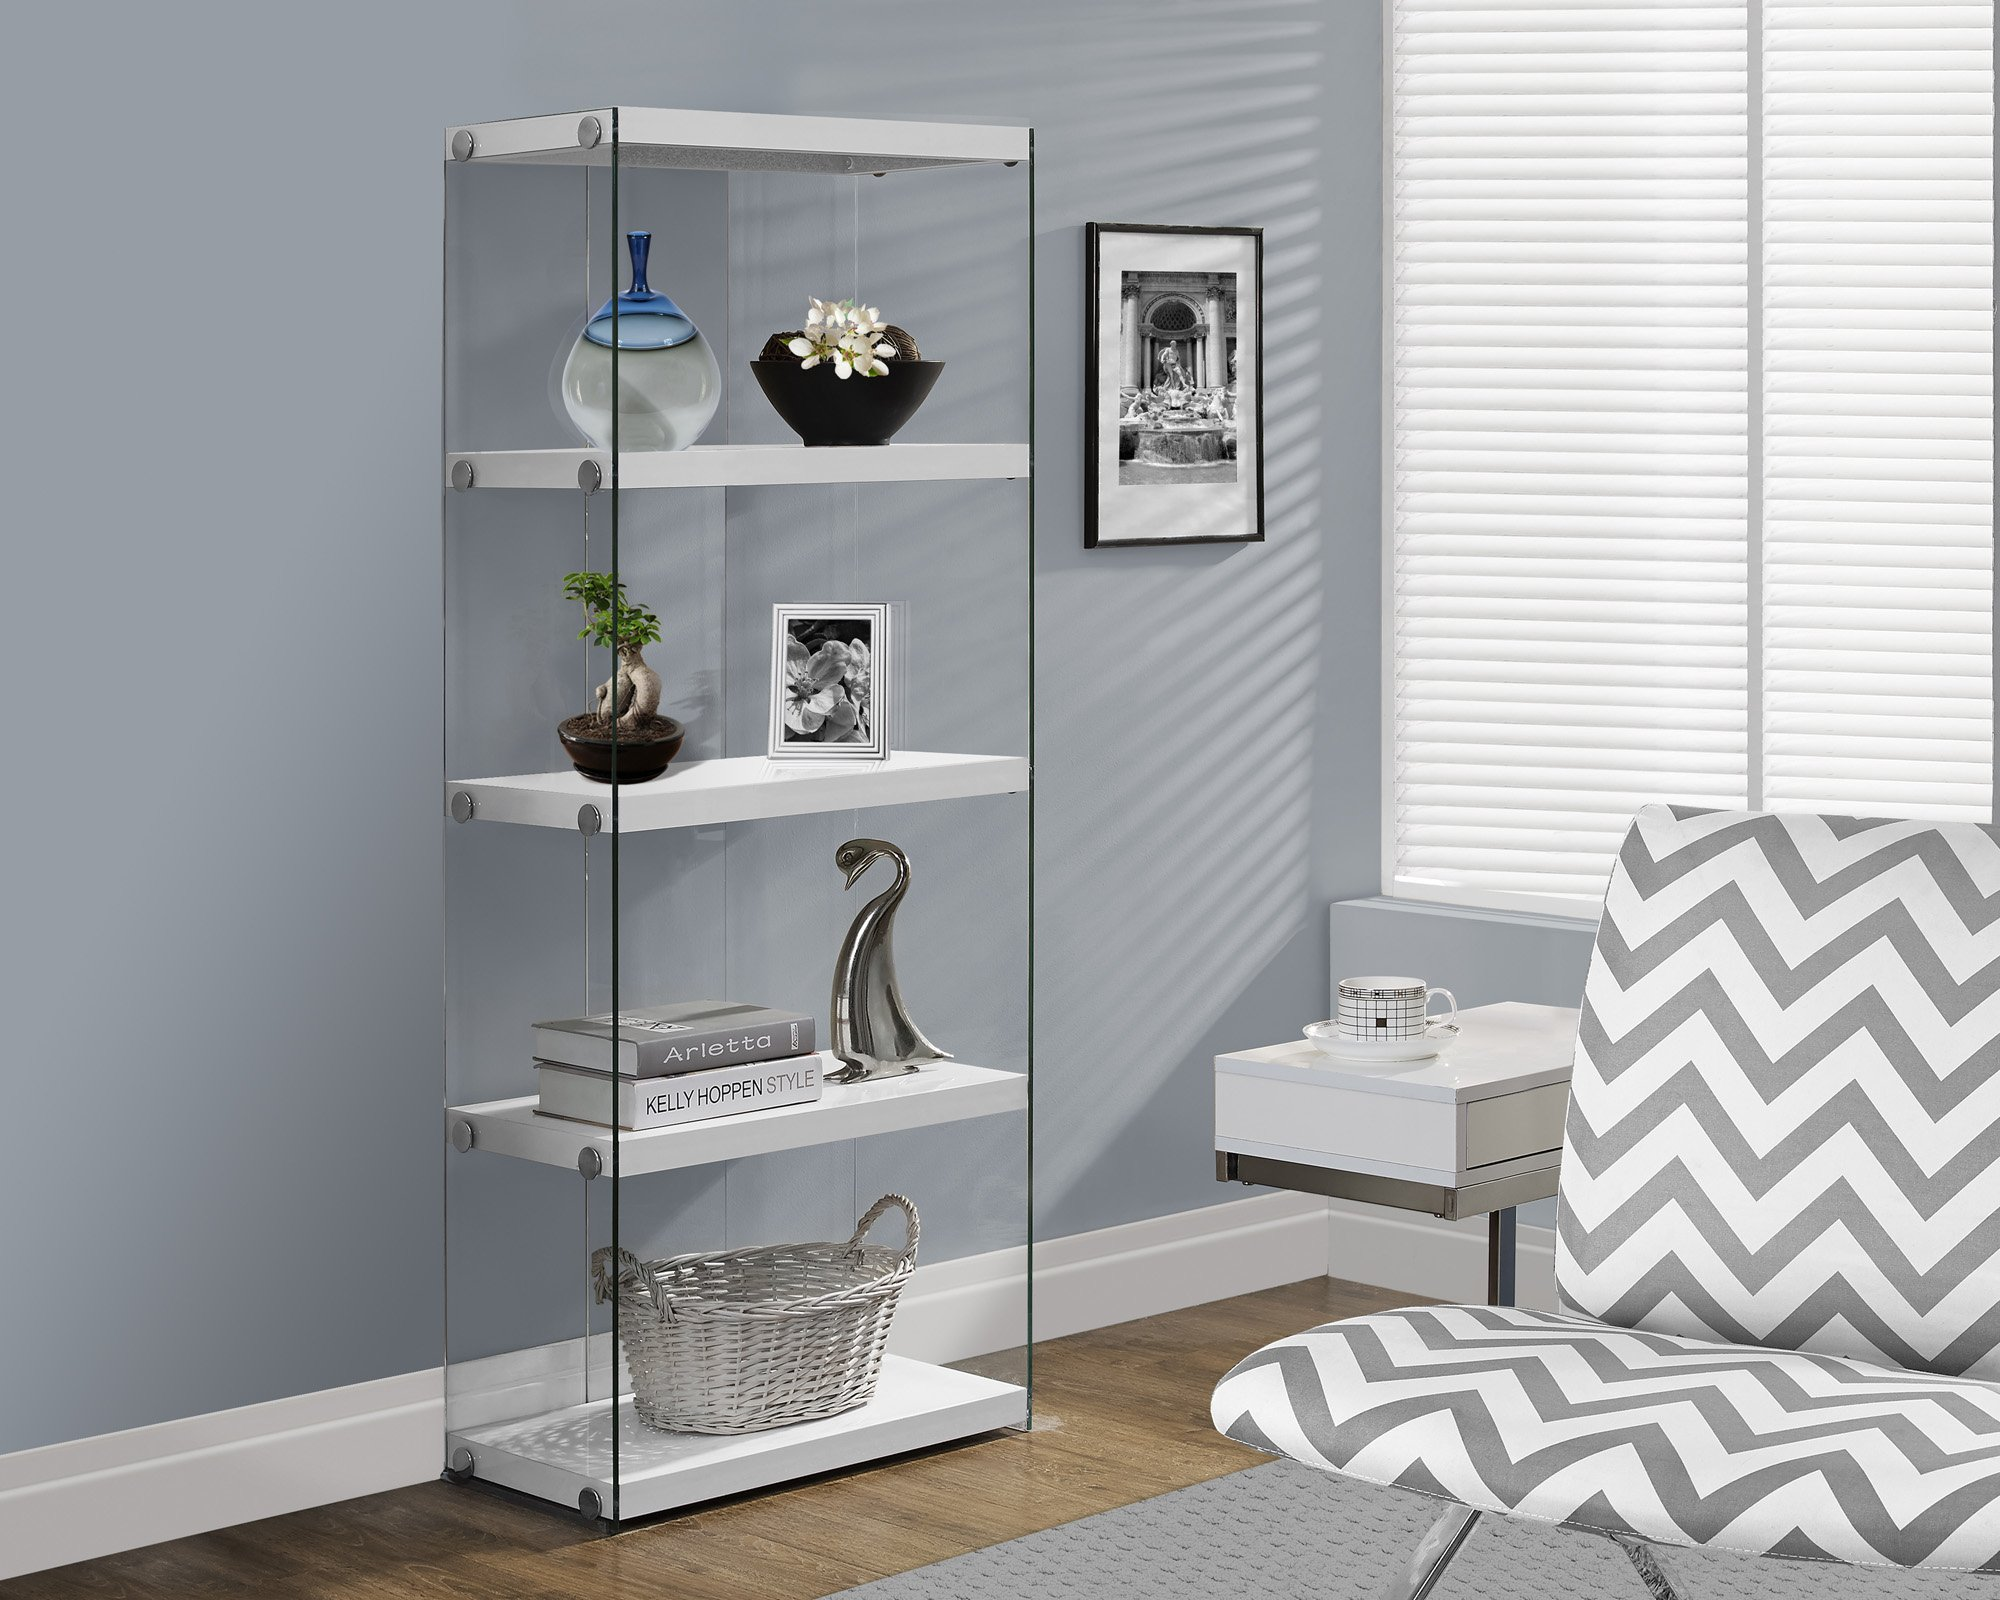 Monarch specialties I 3289, Bookcase, Tempered Glass, Glossy White, 60''H